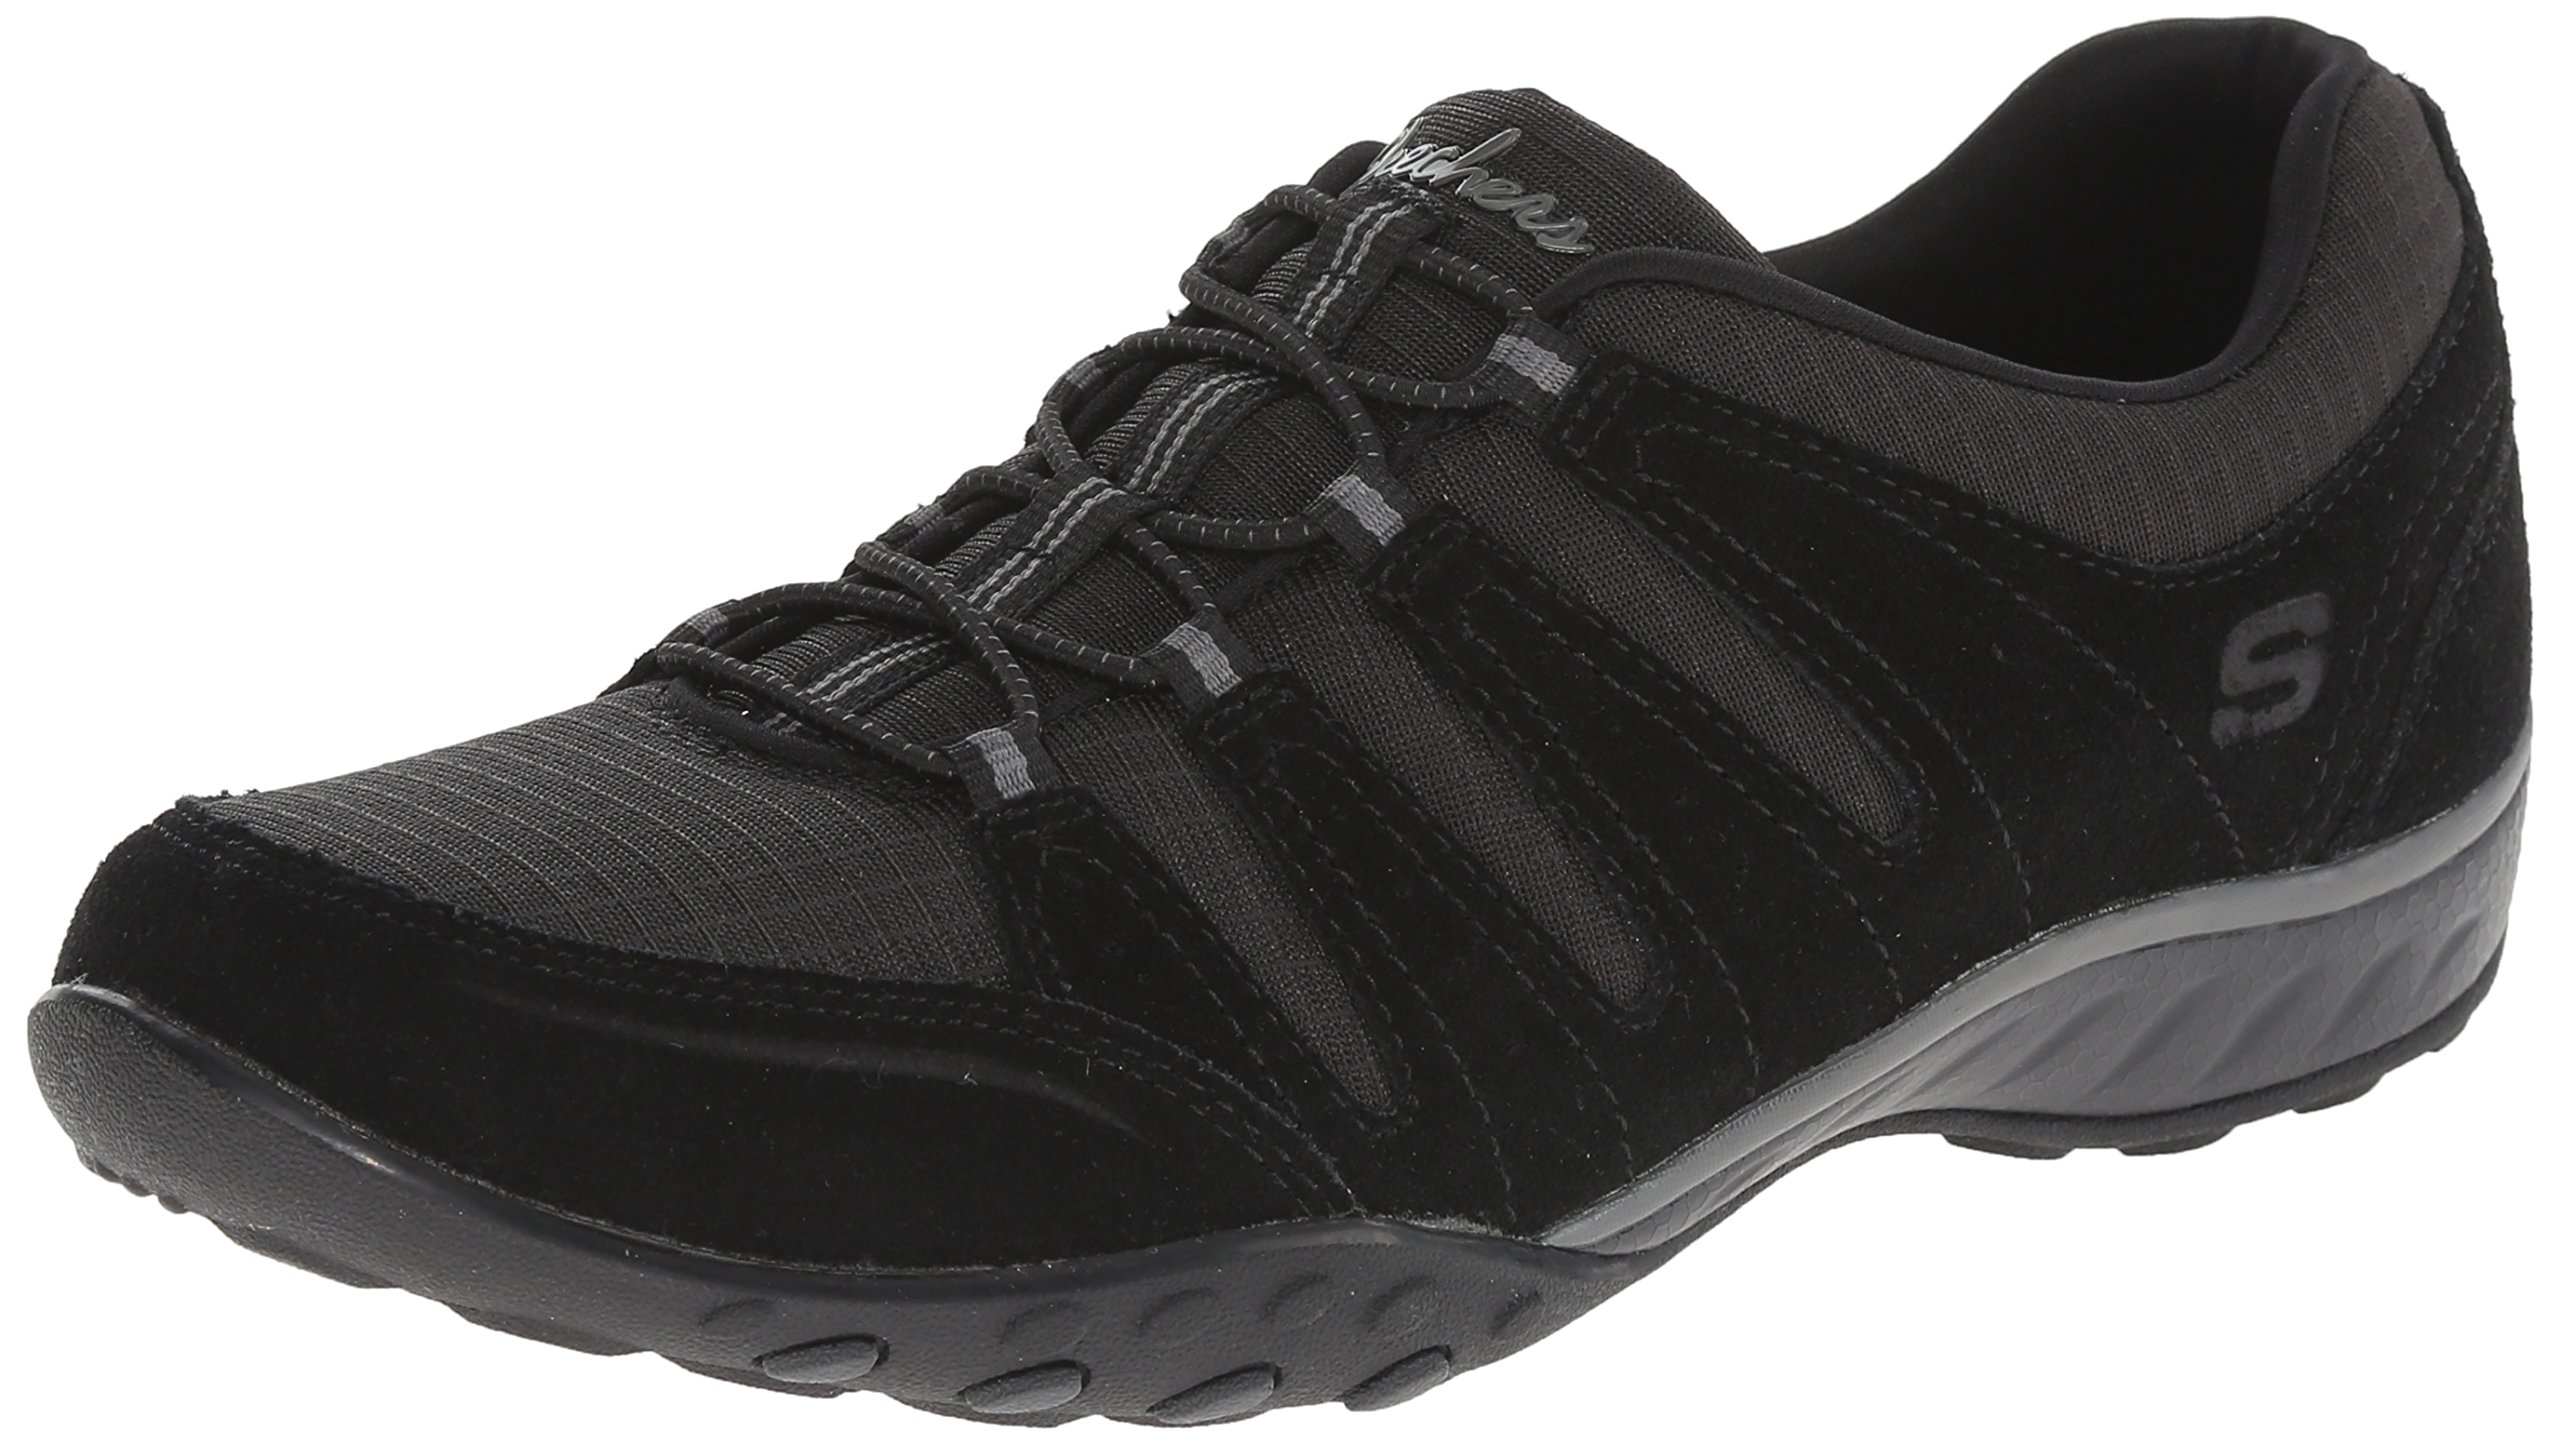 ImagineSneakers Eu Skechers FemmeBlk36 Breathe Basses easy xCBedor